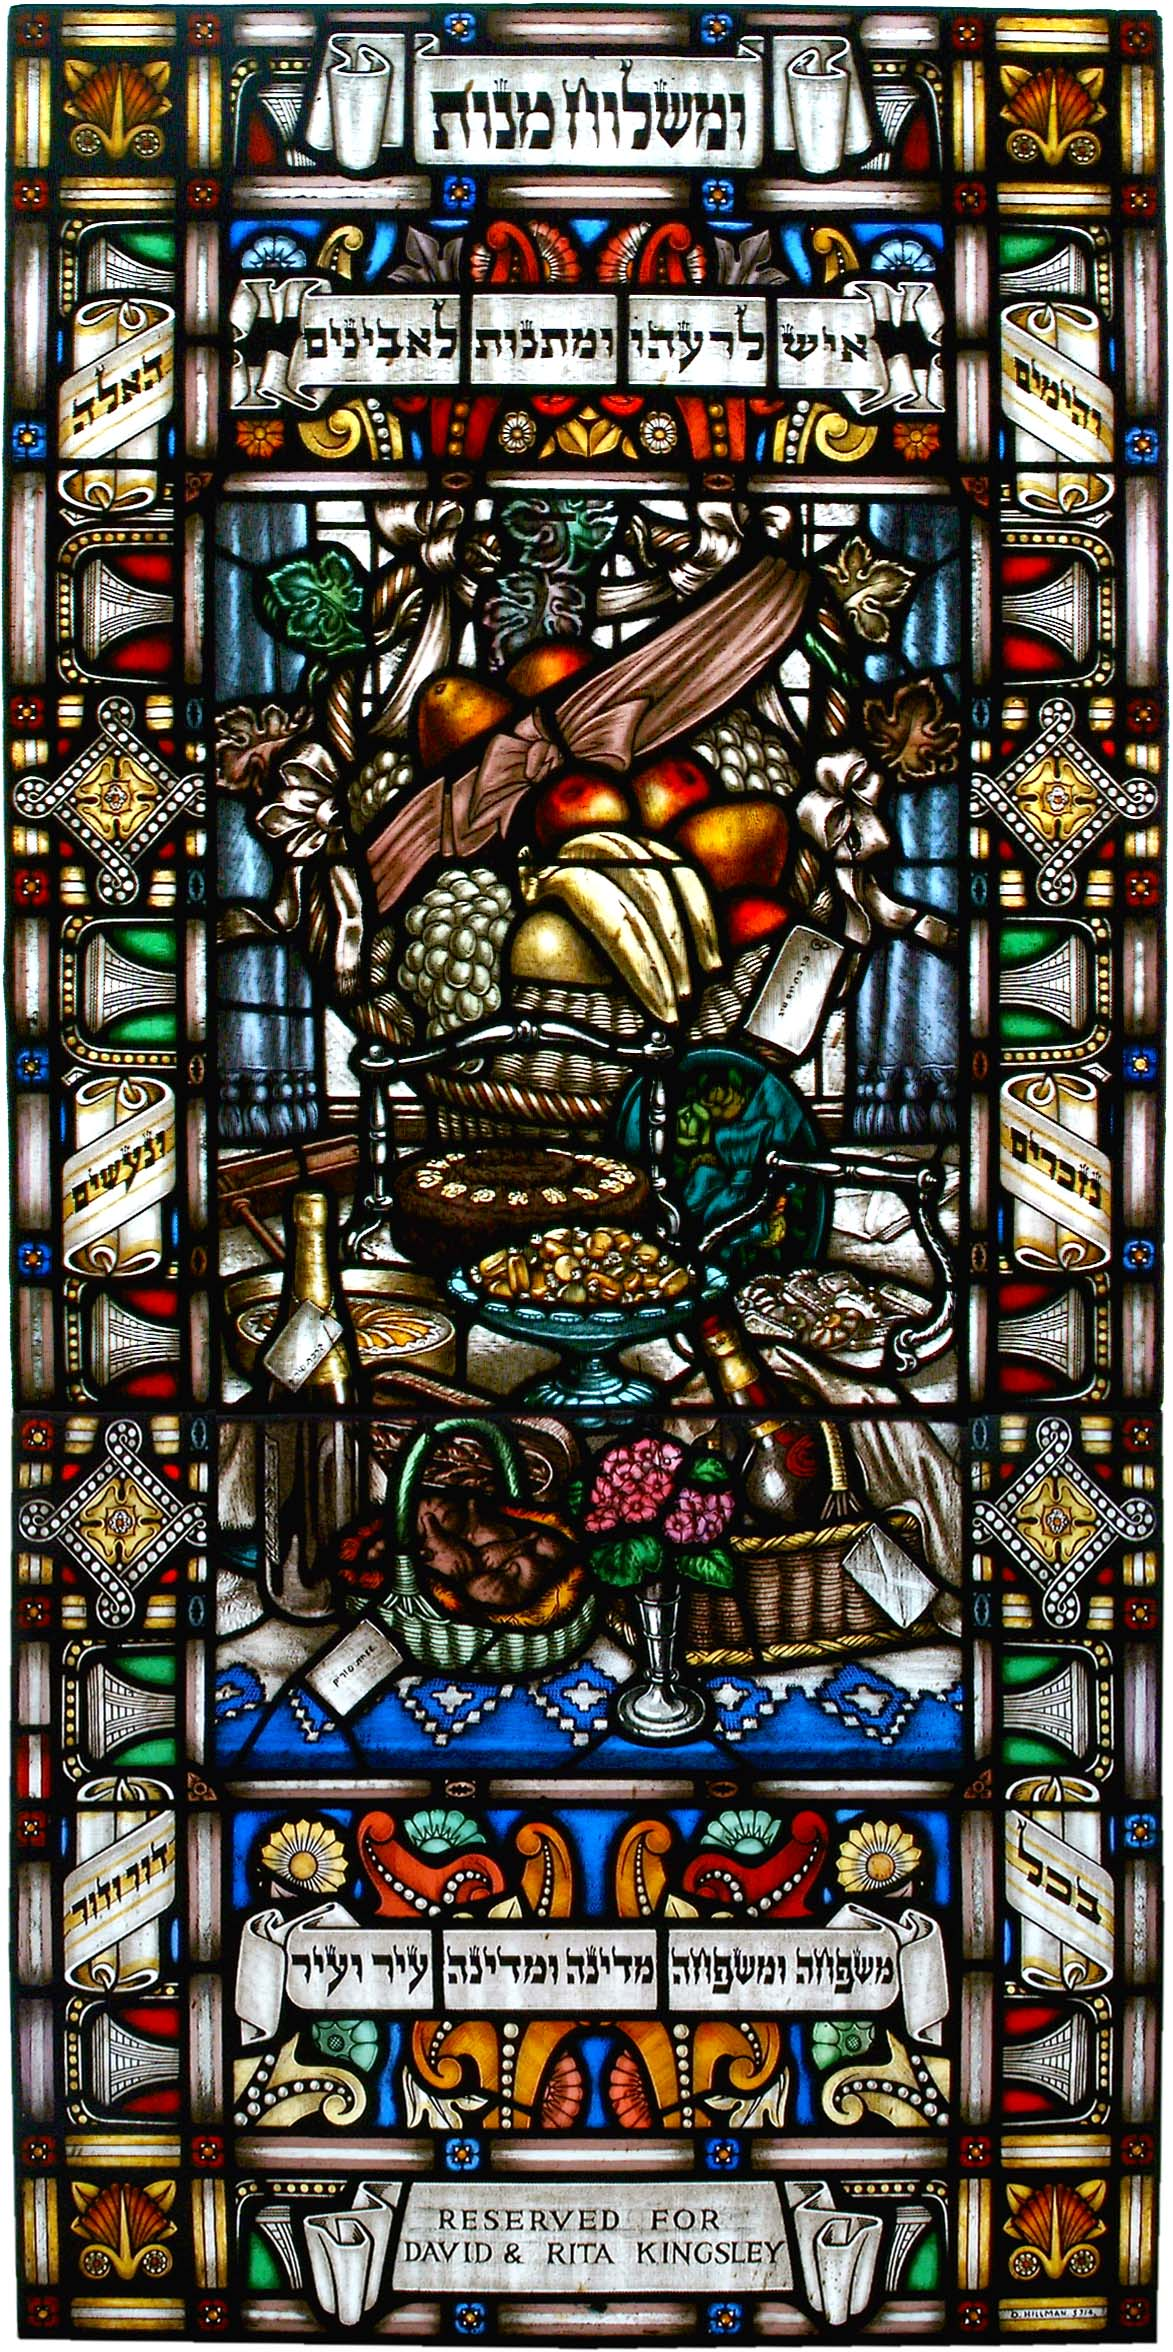 a dense and detailed stained glass window with hebrew script and table laden as if for a feast